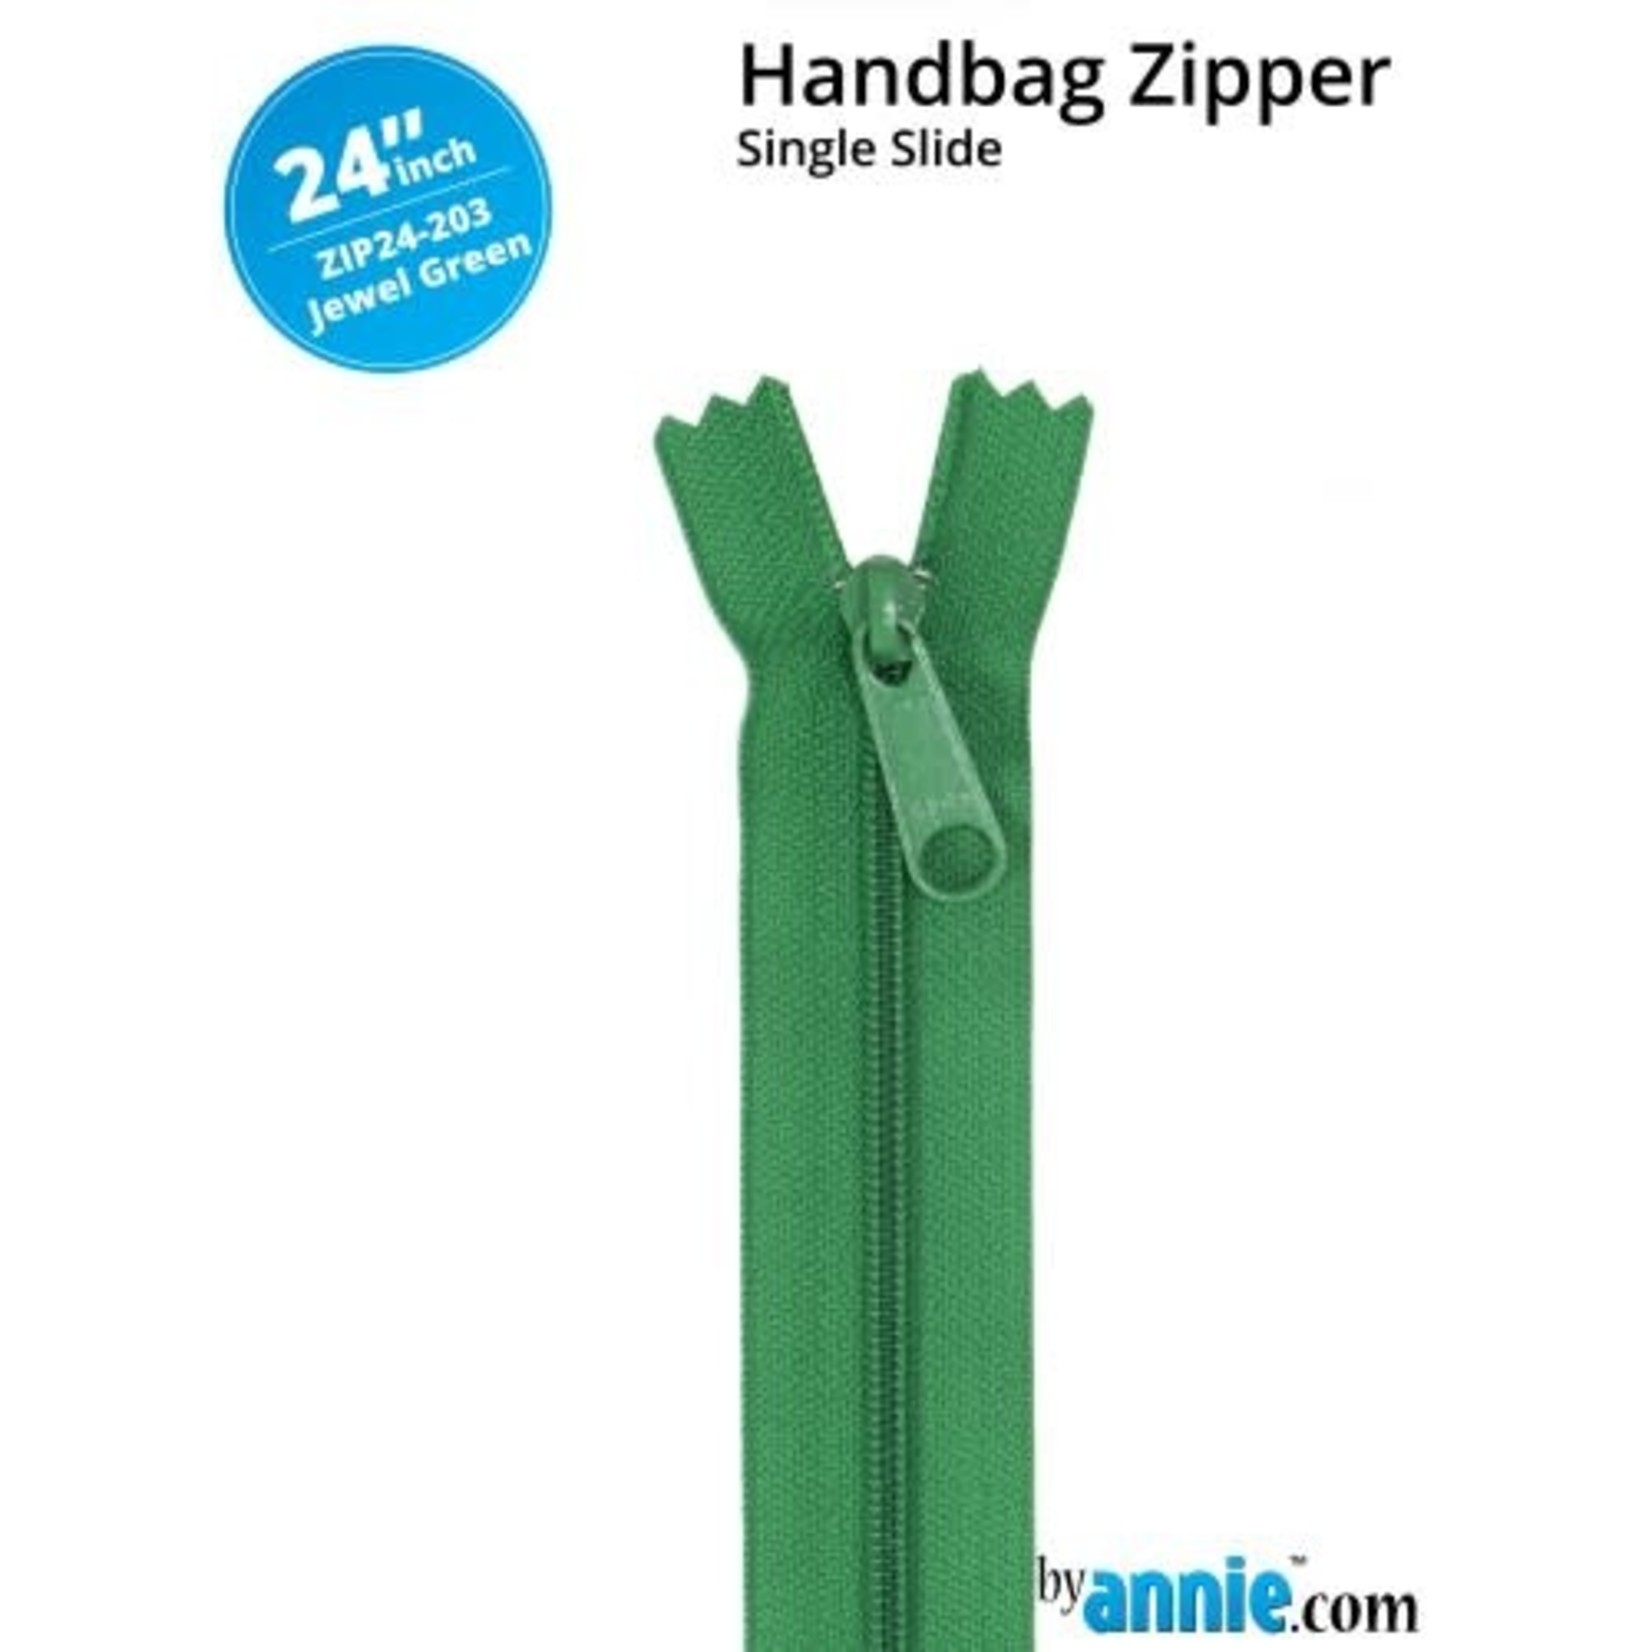 BY ANNIE Single Slide Handbag Zipper 24'' Green